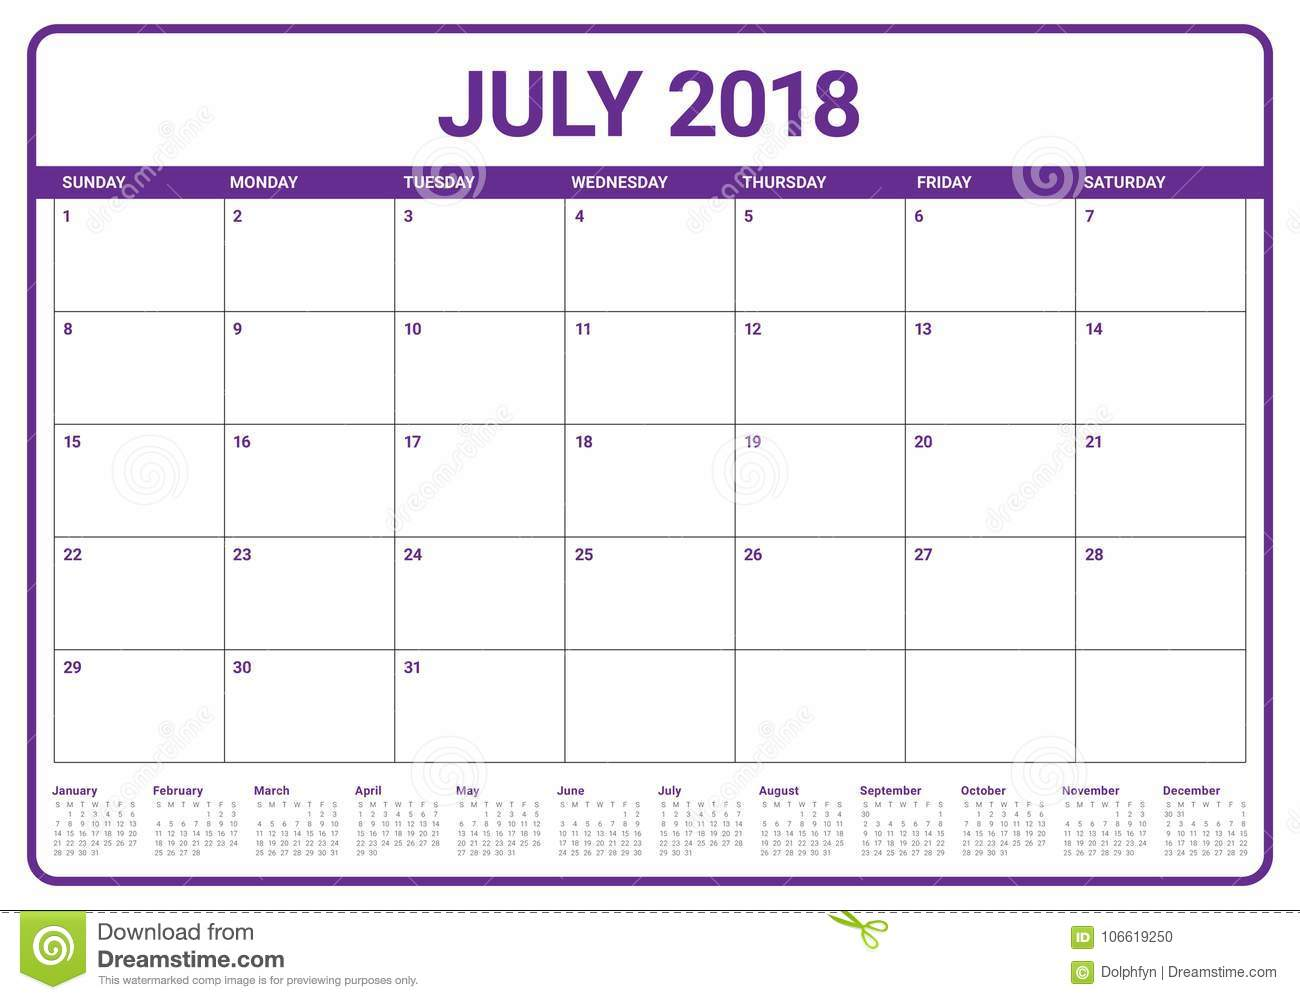 july 2018 calendar planner vector illustration